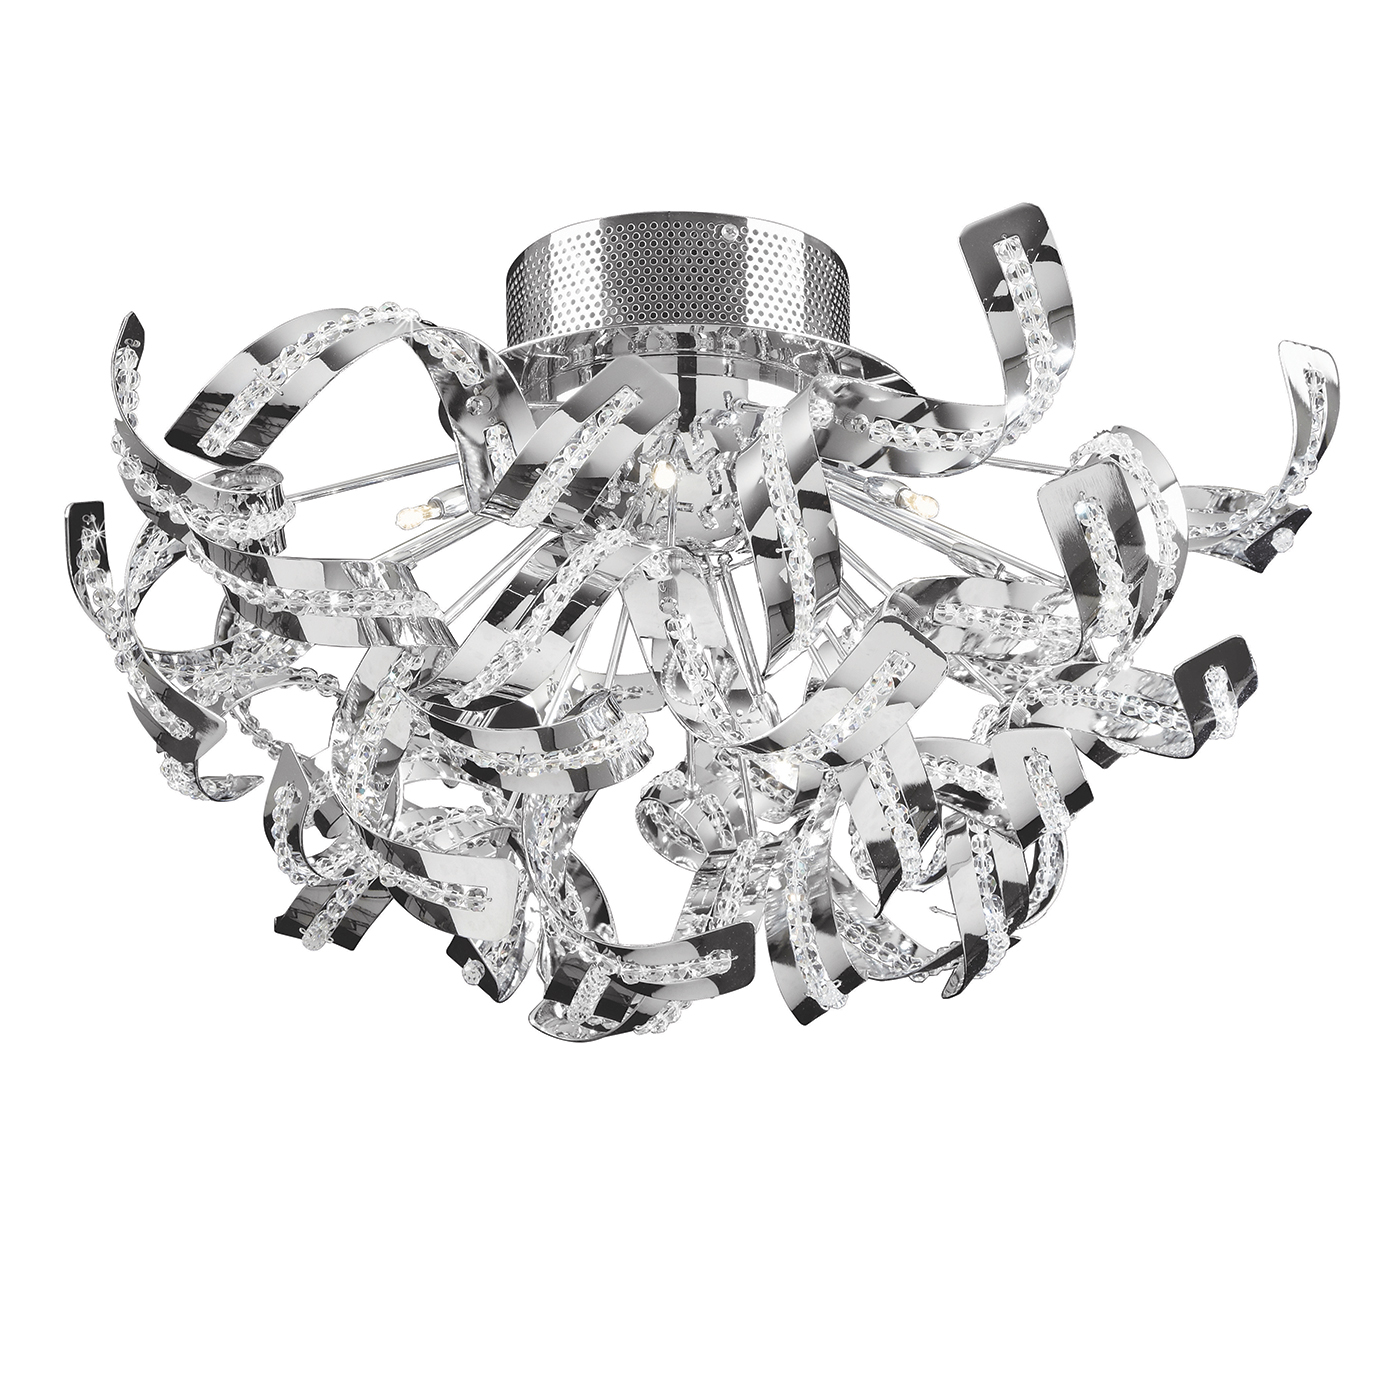 Endon Twist flush ceiling light 12x 20W Chrome effect & clear crystal (k5) glass Thumbnail 1